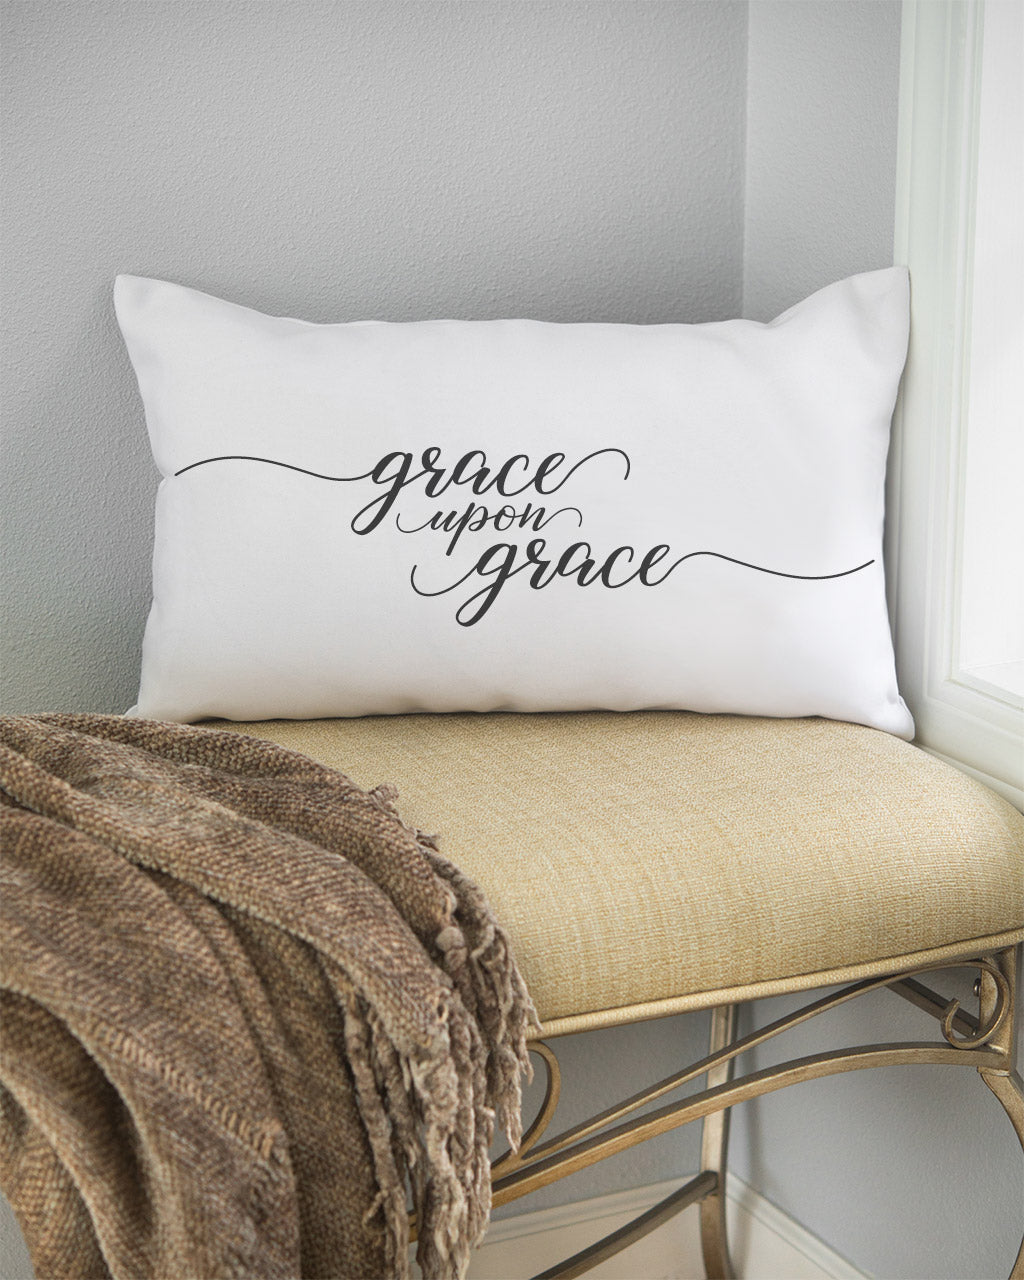 "grace upon grace artisan lumbar pillow. This pretty ""grace upon grace"" pillow is a daily reminder of God's abundant and never-ending grace."